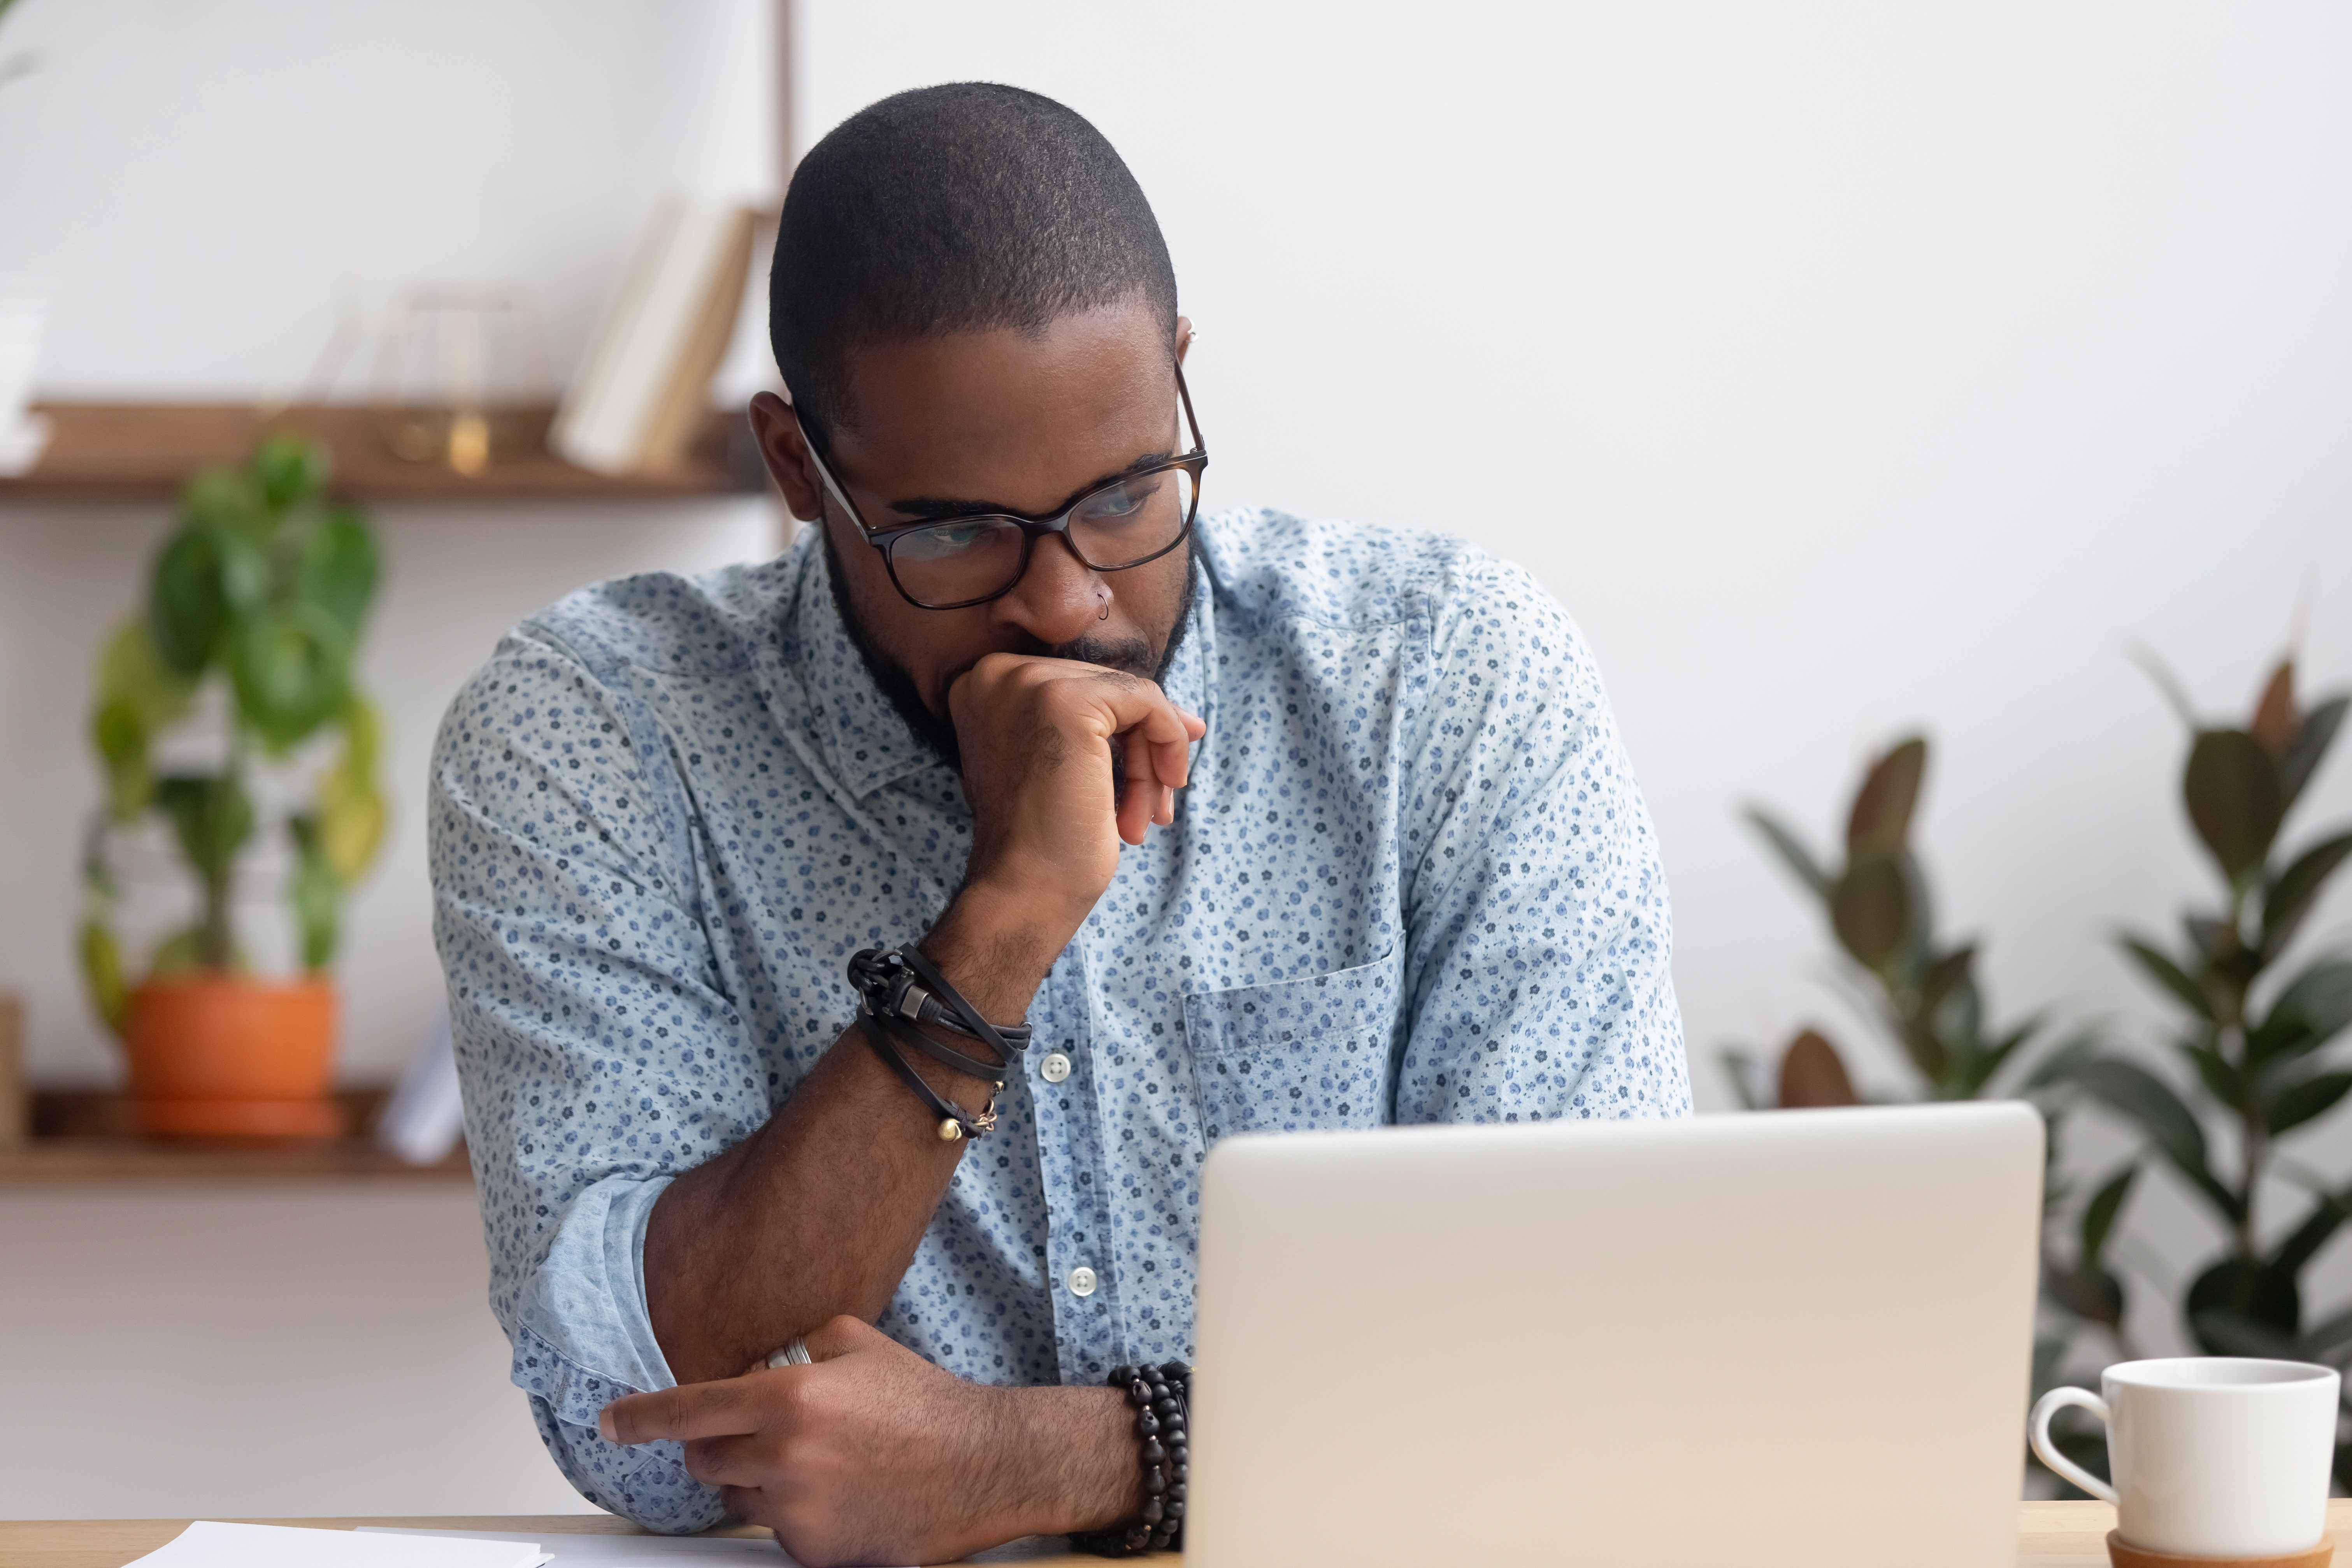 Man anxiously looks at his laptop